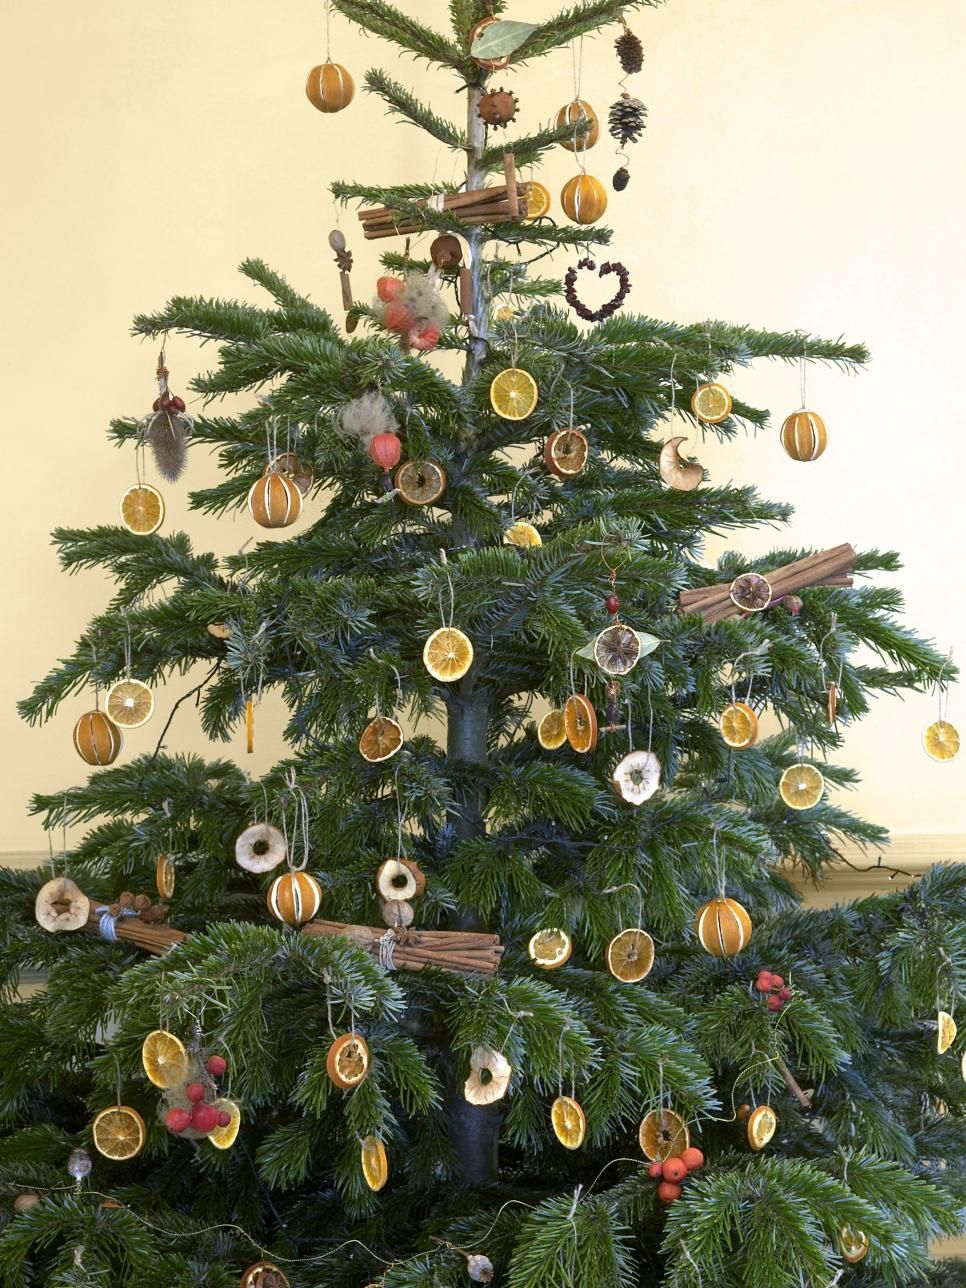 Christmas Tree Decorating Ideas Interior Design Styles And Color Schemes For Home Hgtv